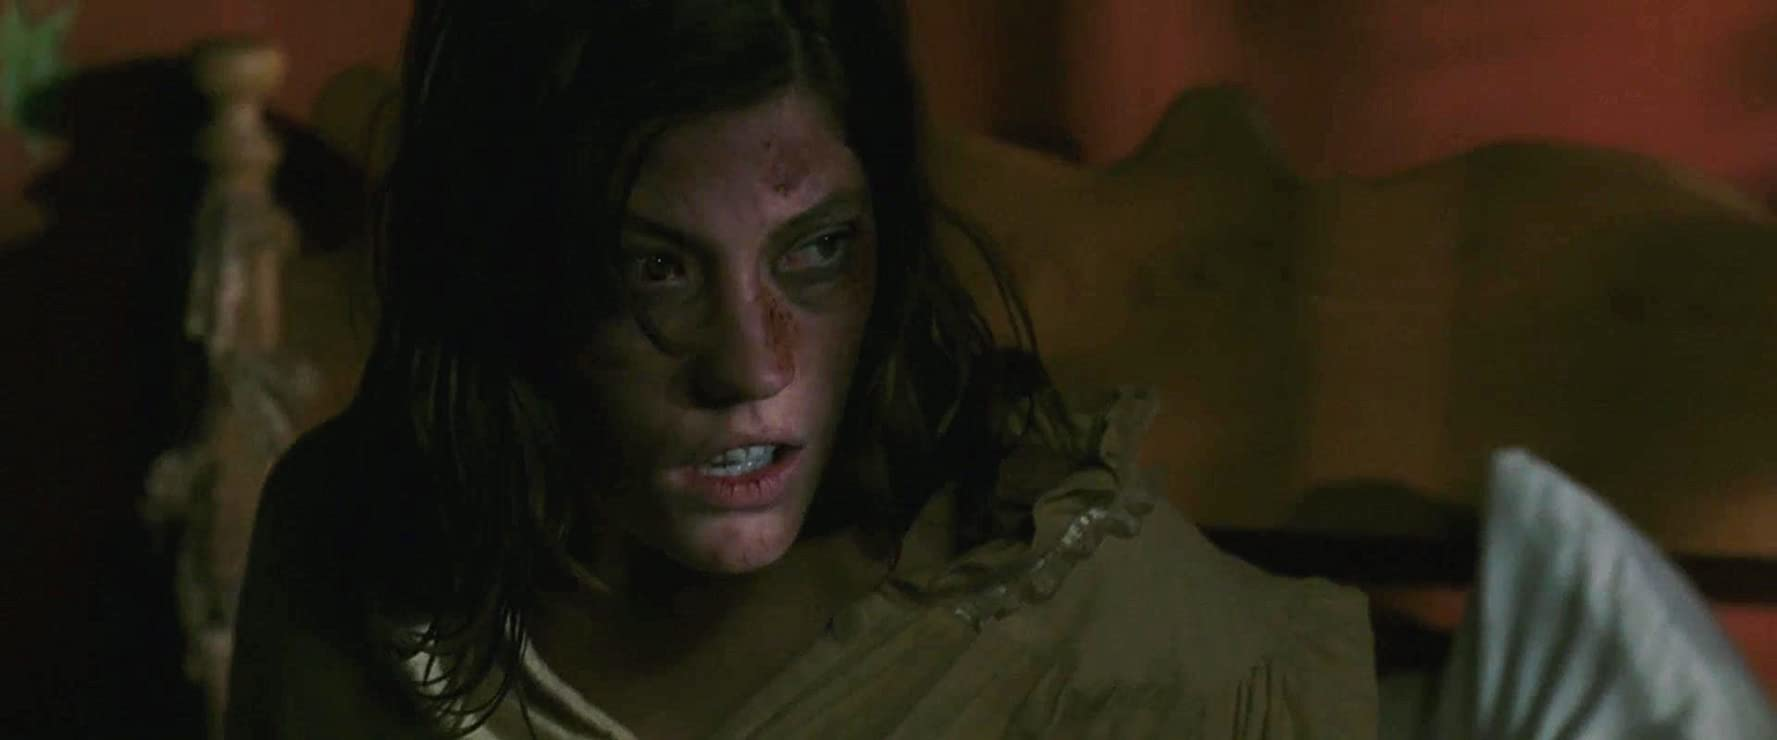 Jennifer Carpenter in The Exorcism of Emily Rose (2005)